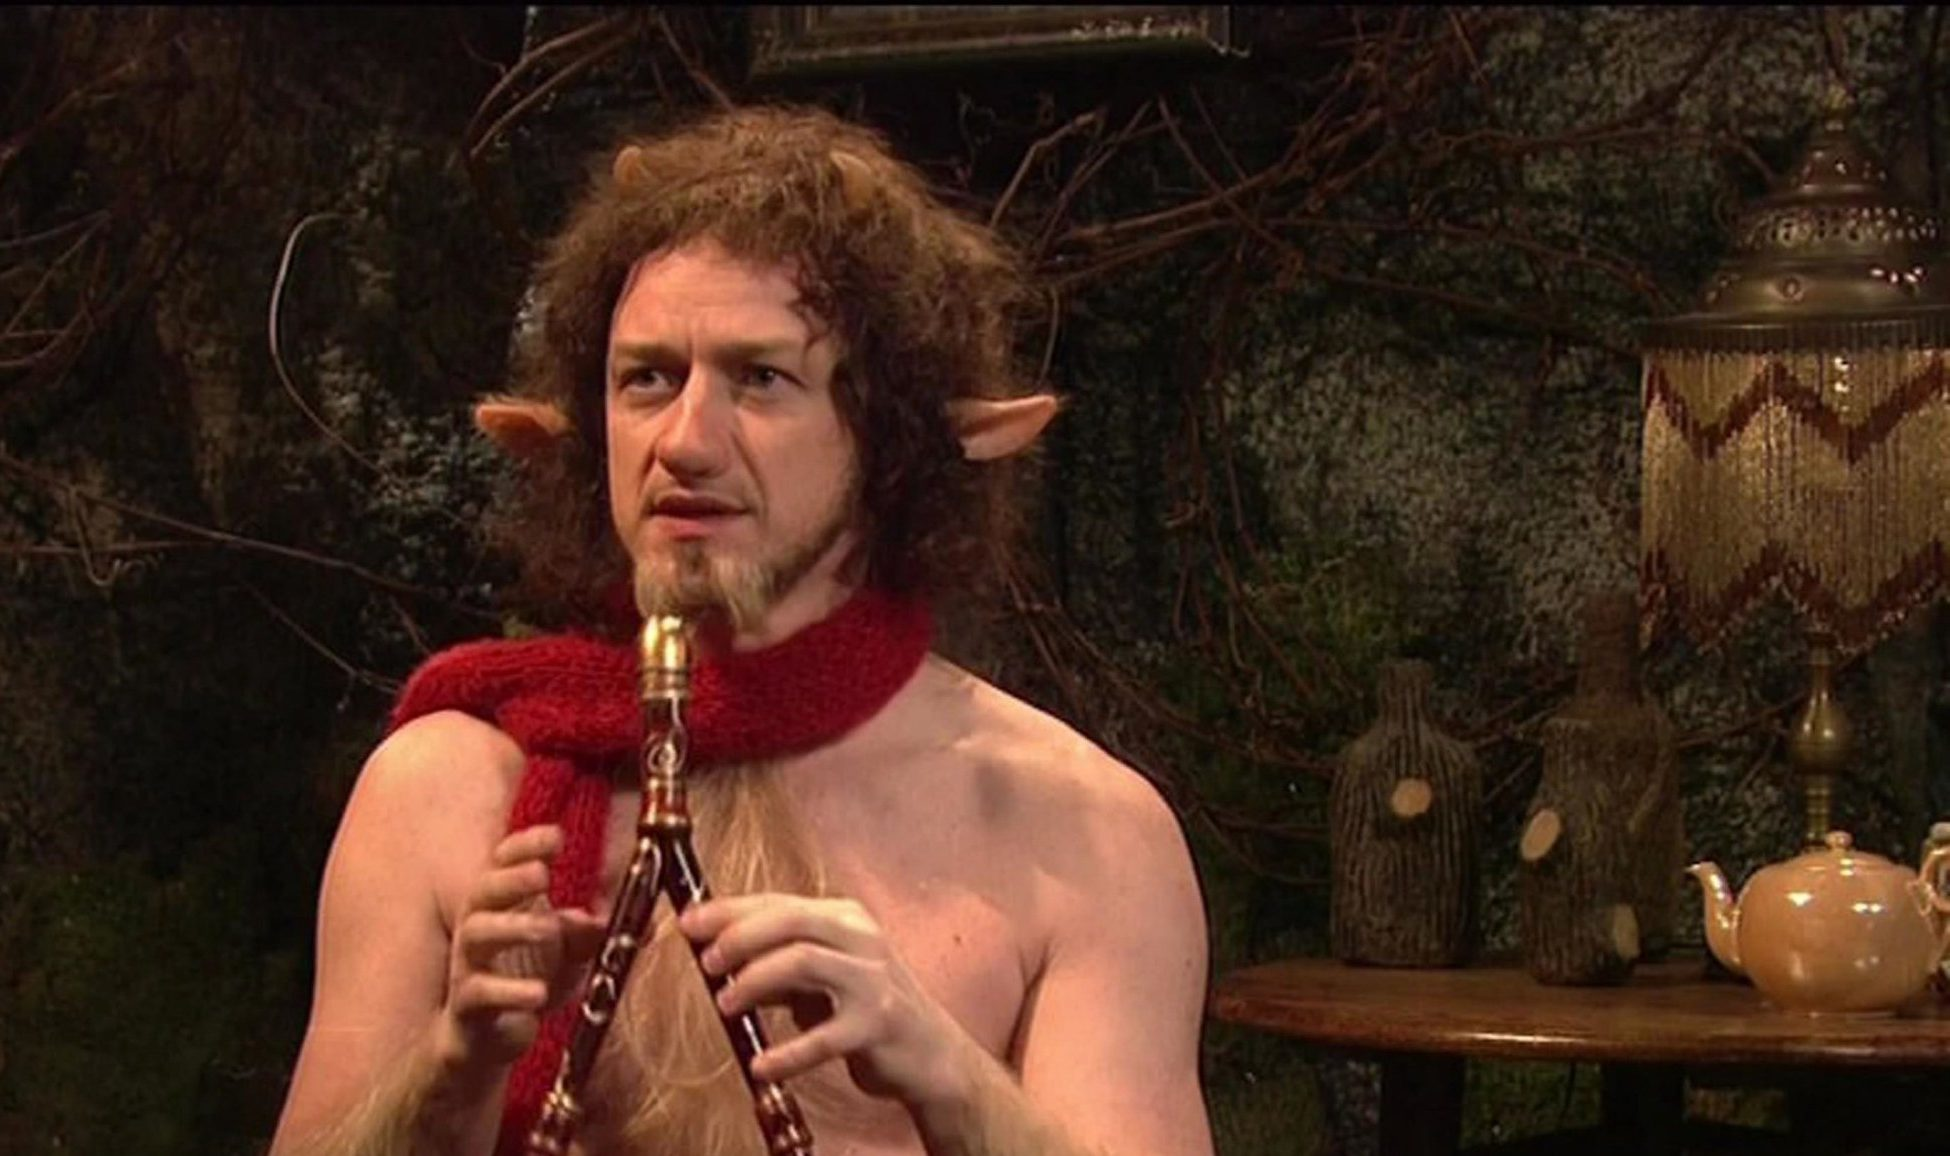 James McAvoy recreates Chronicles Of Narnia's Mr Tumnus and mocks 'lazy Hermiones' in SNL sketch